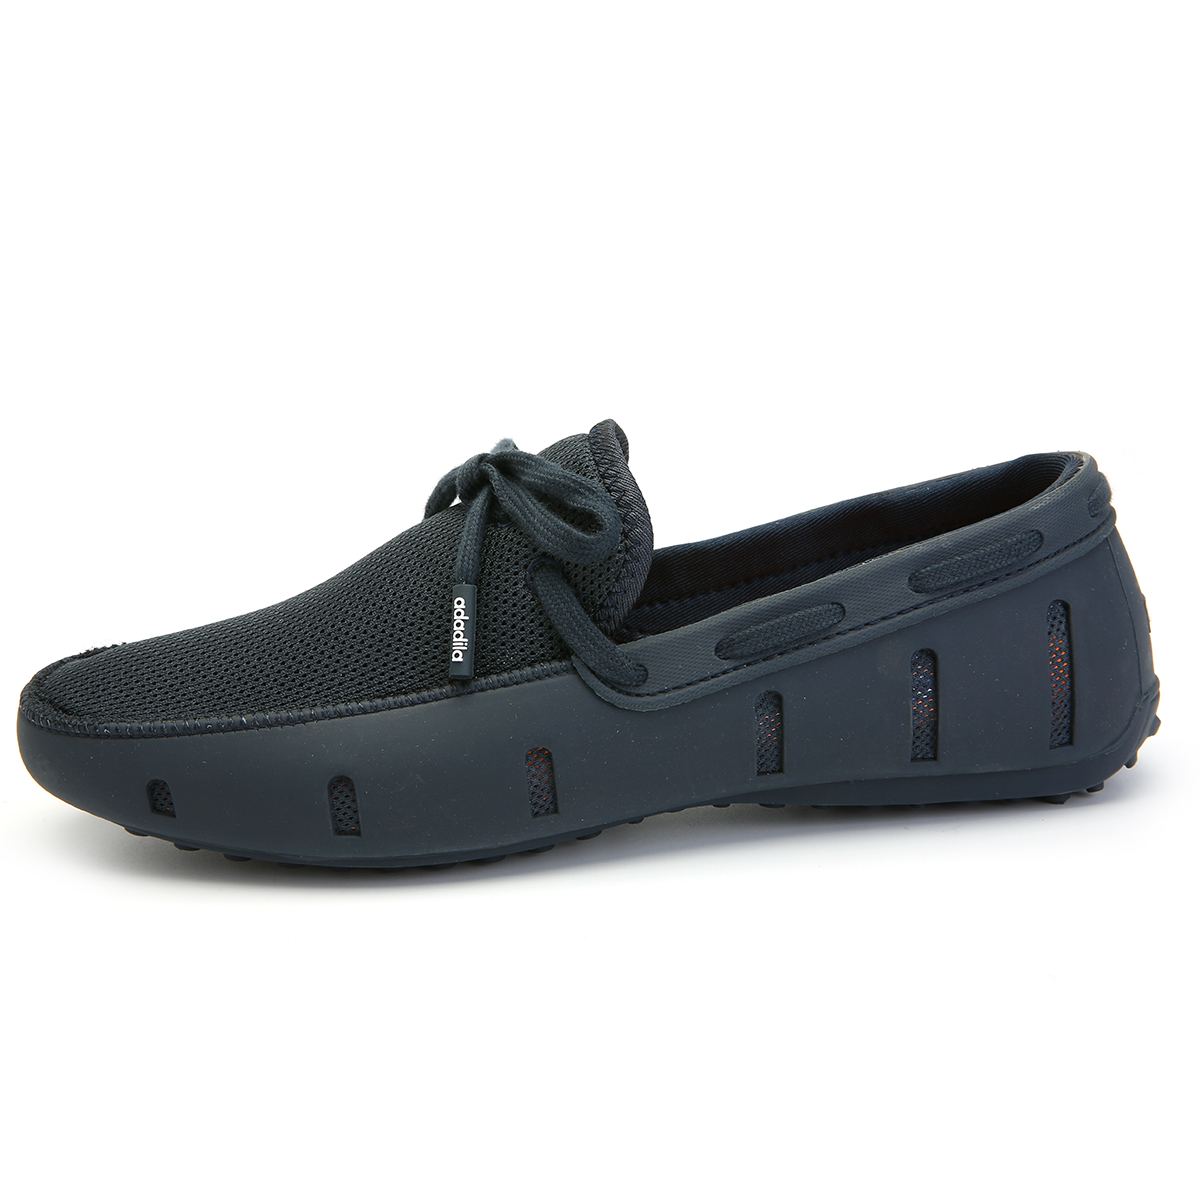 US-Adadila-Men-039-s-Summer-Driving-Loafers-Casual-Shoes-Slip-on-Leisure-Flats-Mesh thumbnail 15